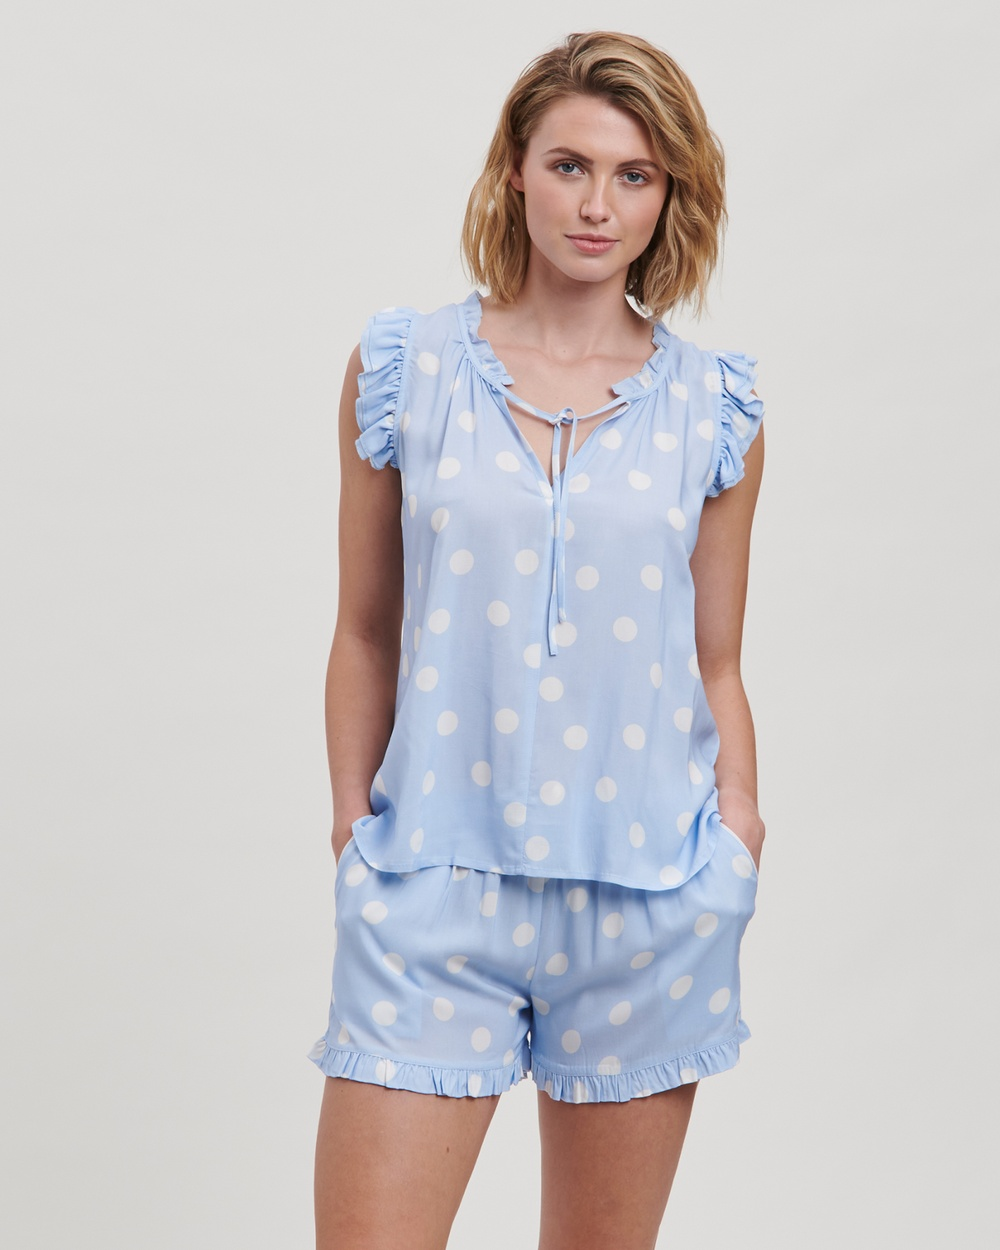 Bluebell Spot Frill Pyjama Shorts Set - Two-piece sets